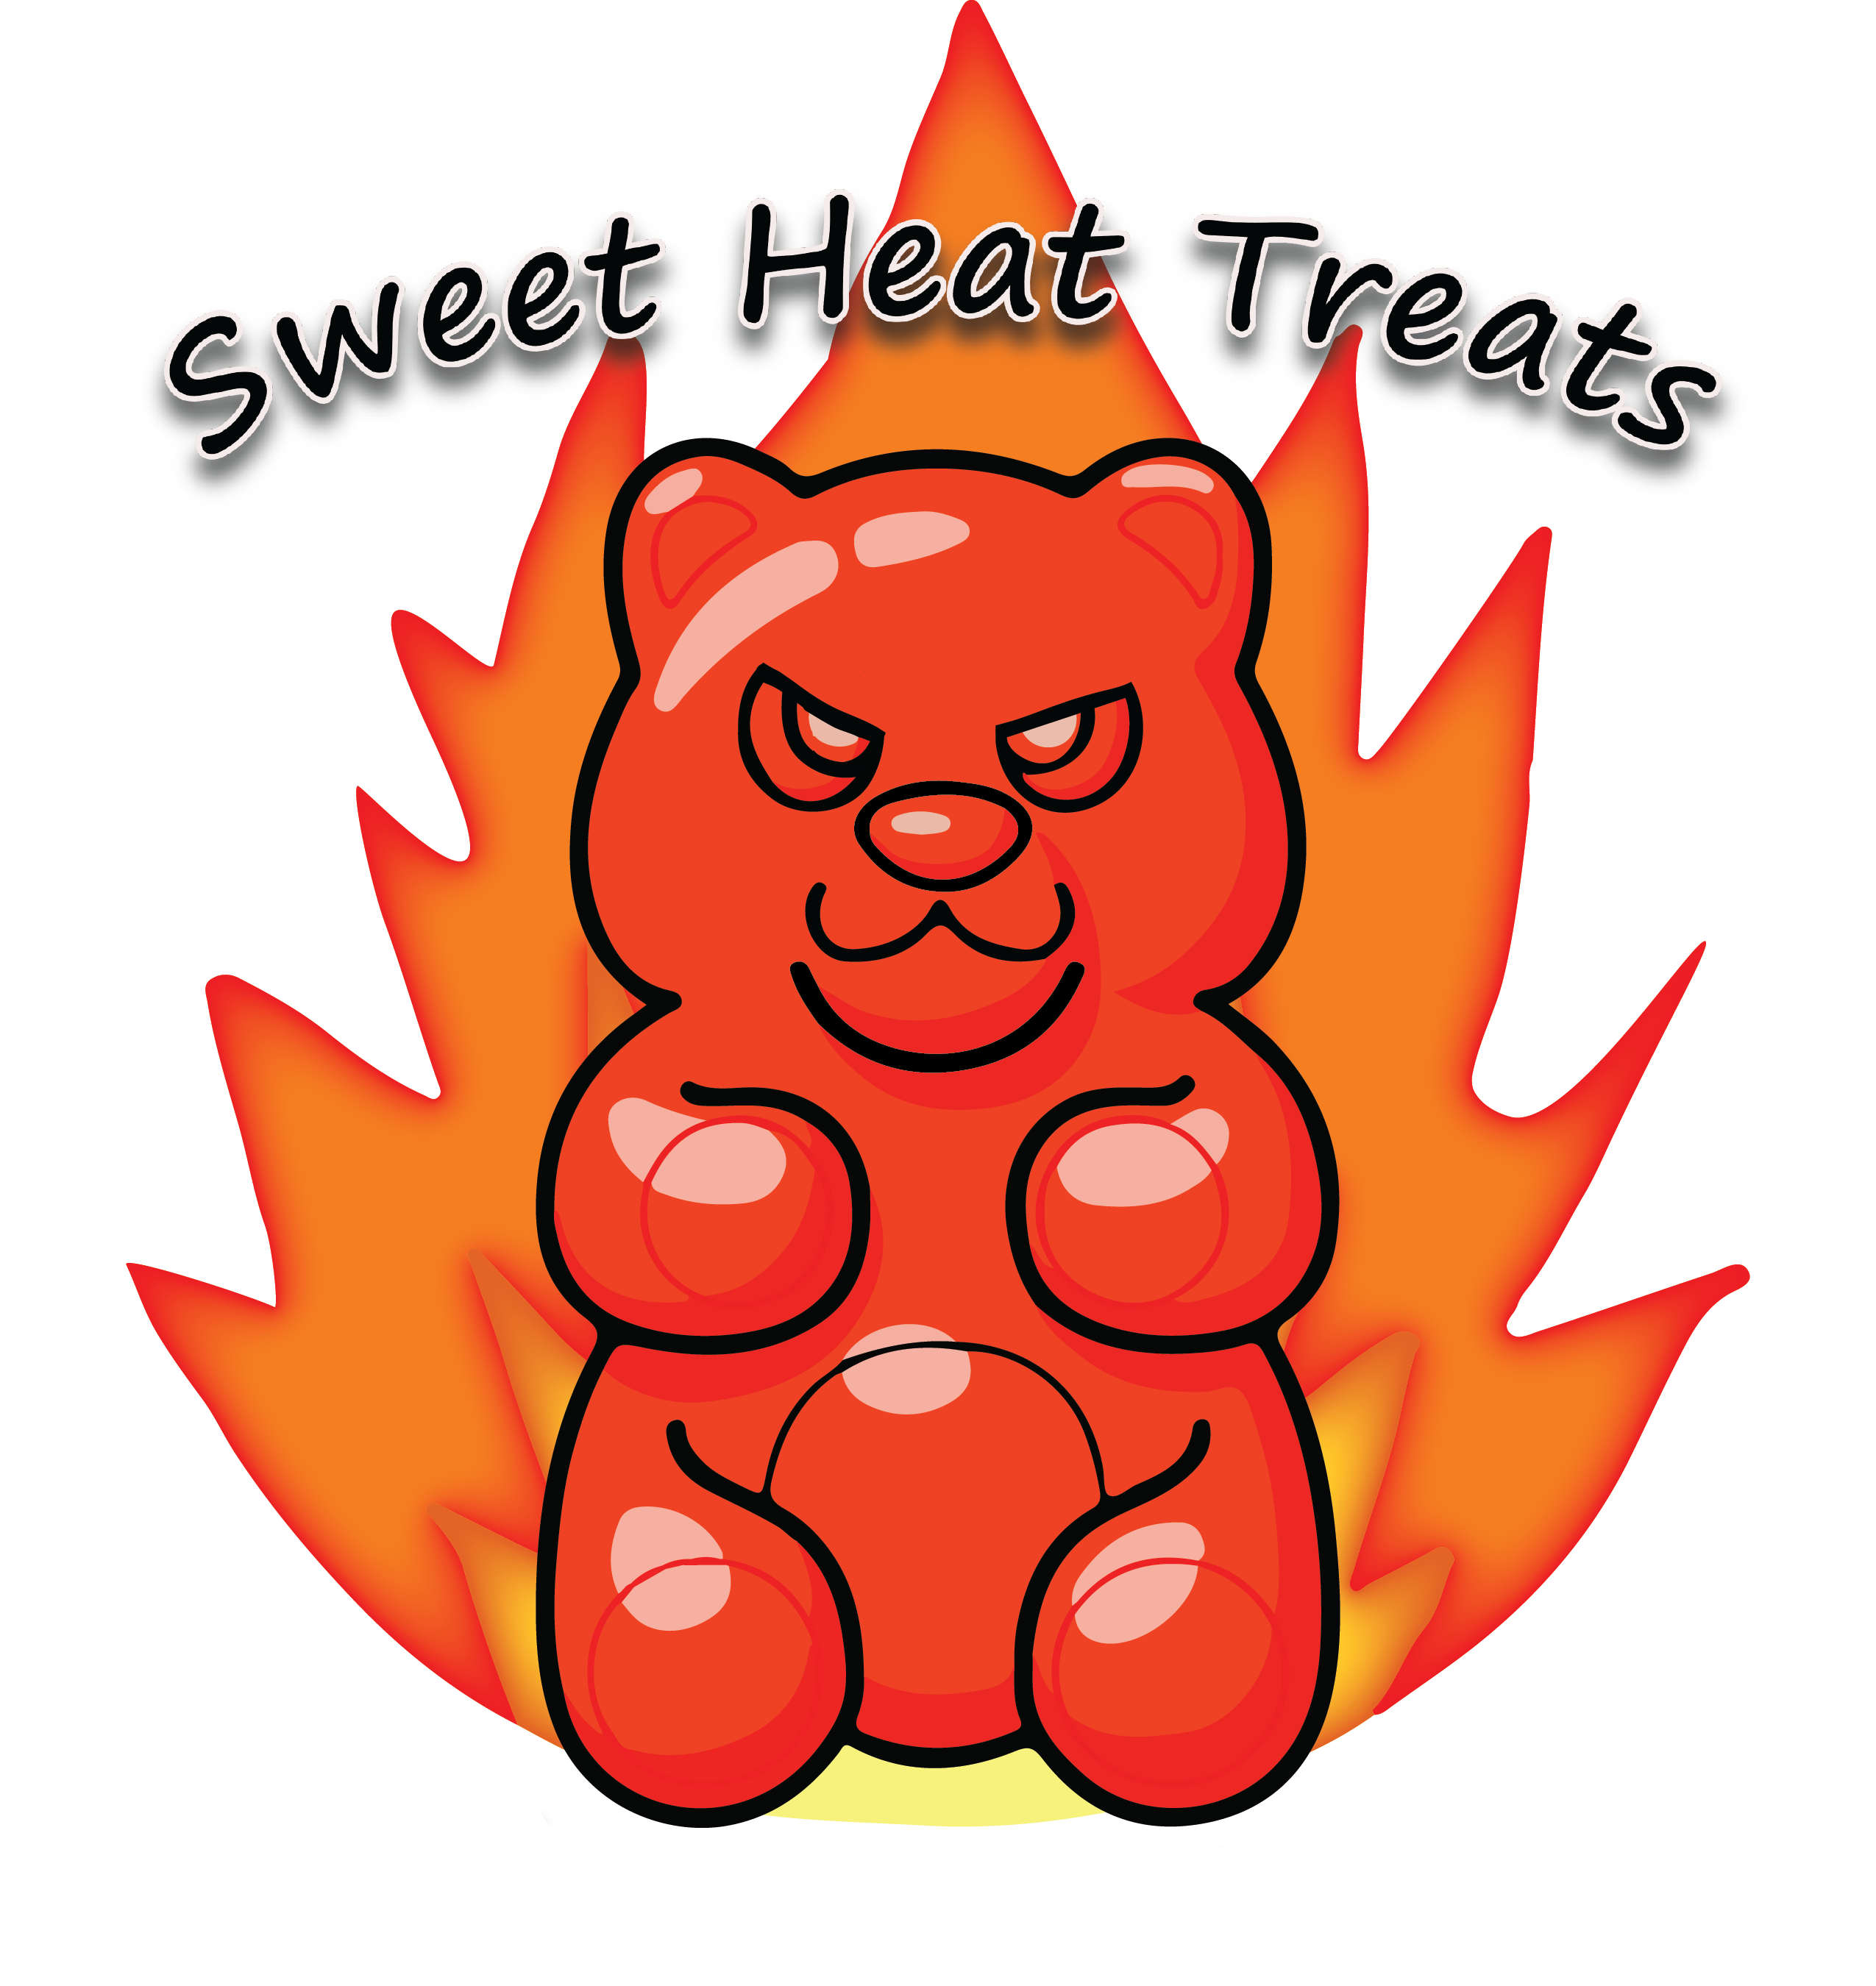 Sweets and treats clipart heat picture transparent Sweet Heat Treats picture transparent